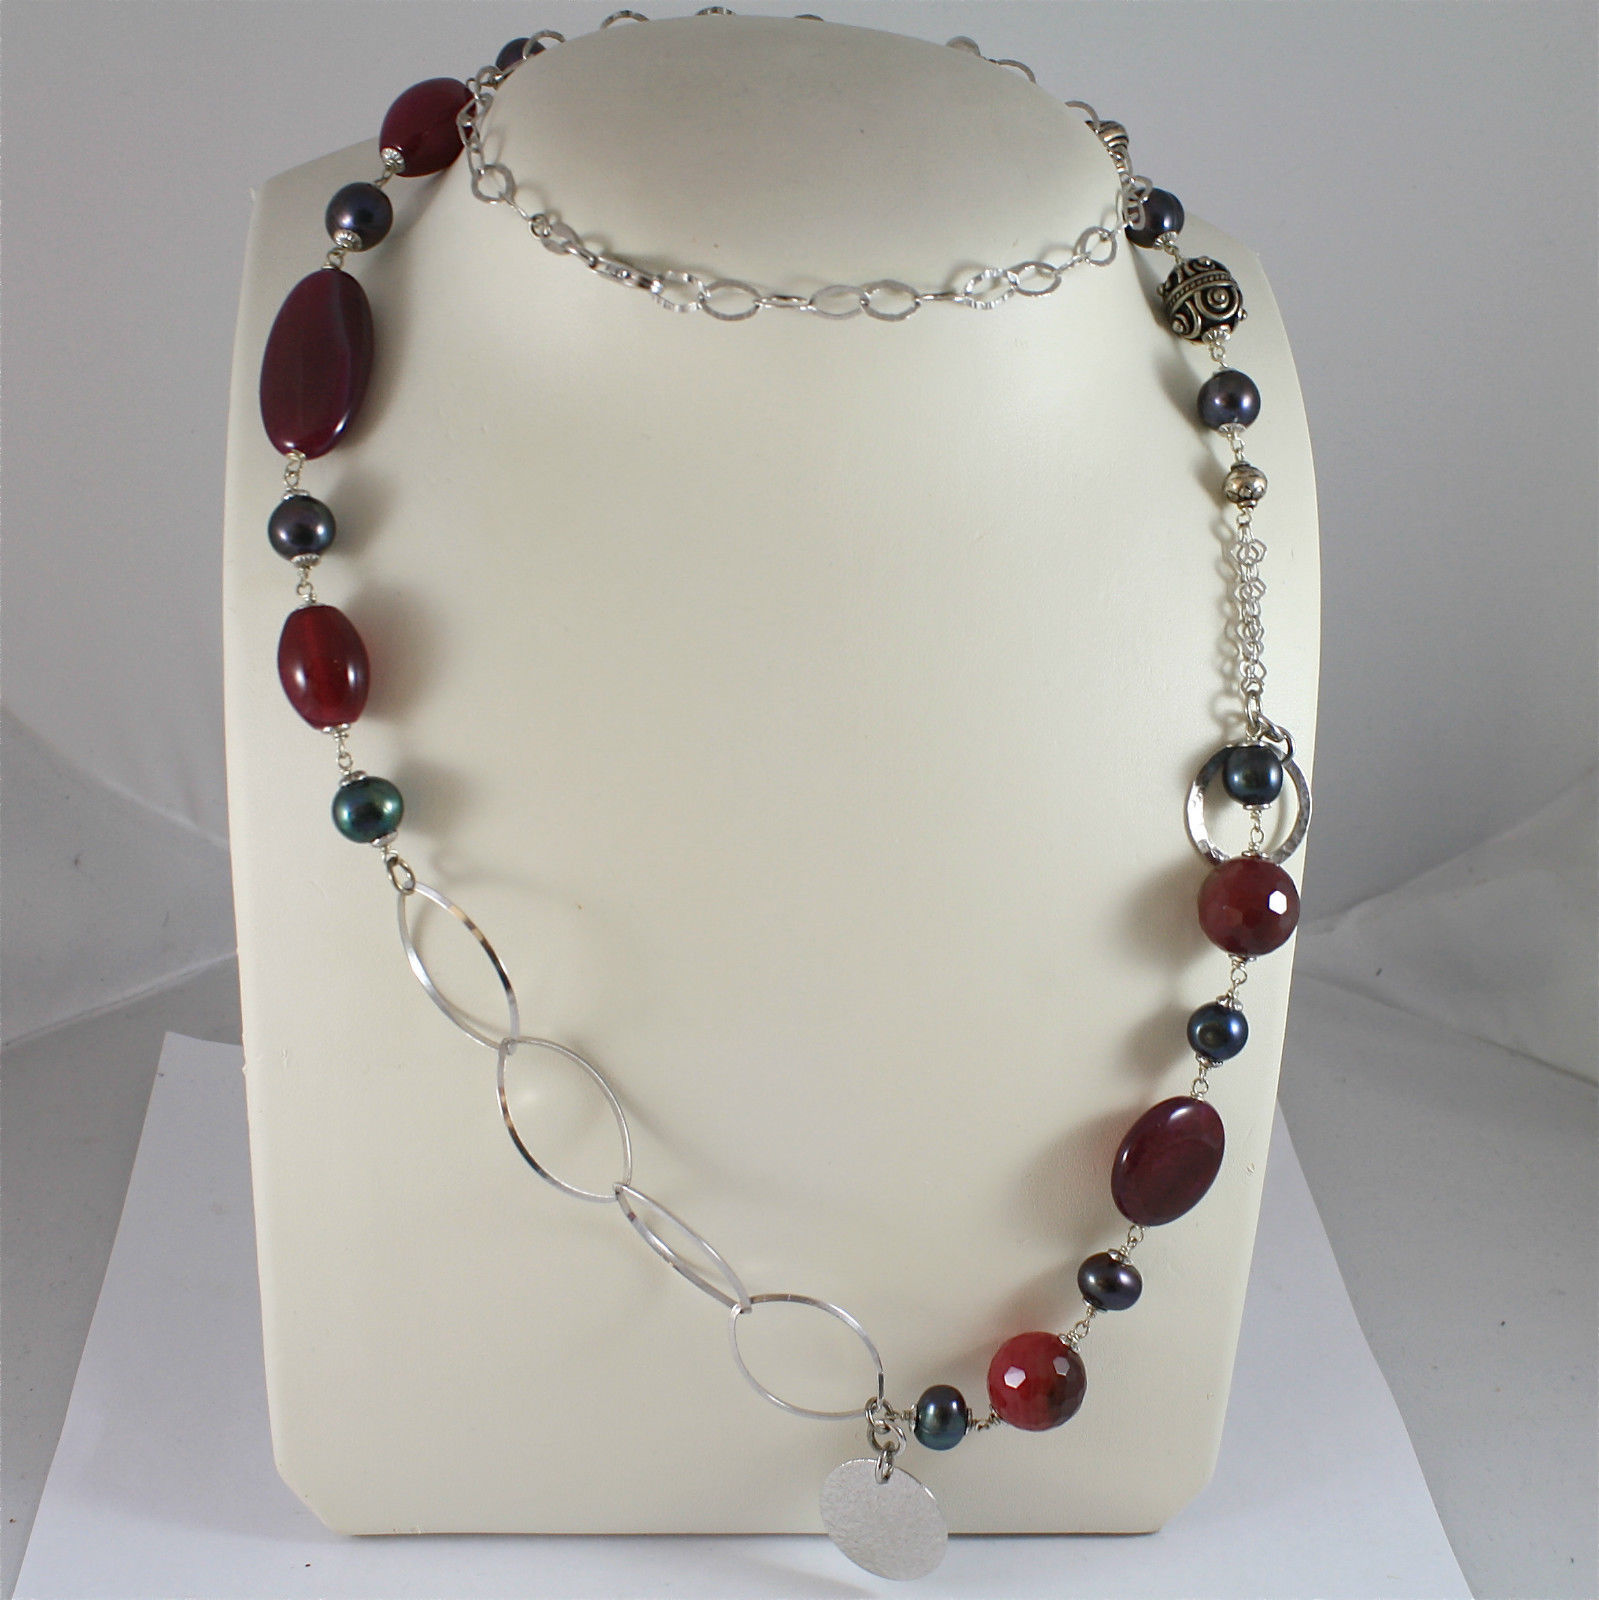 .925 RHODIUM SILVER NECKLACE WITH BLACK PEARLS AND RED AGATE, ROUND MEDAL